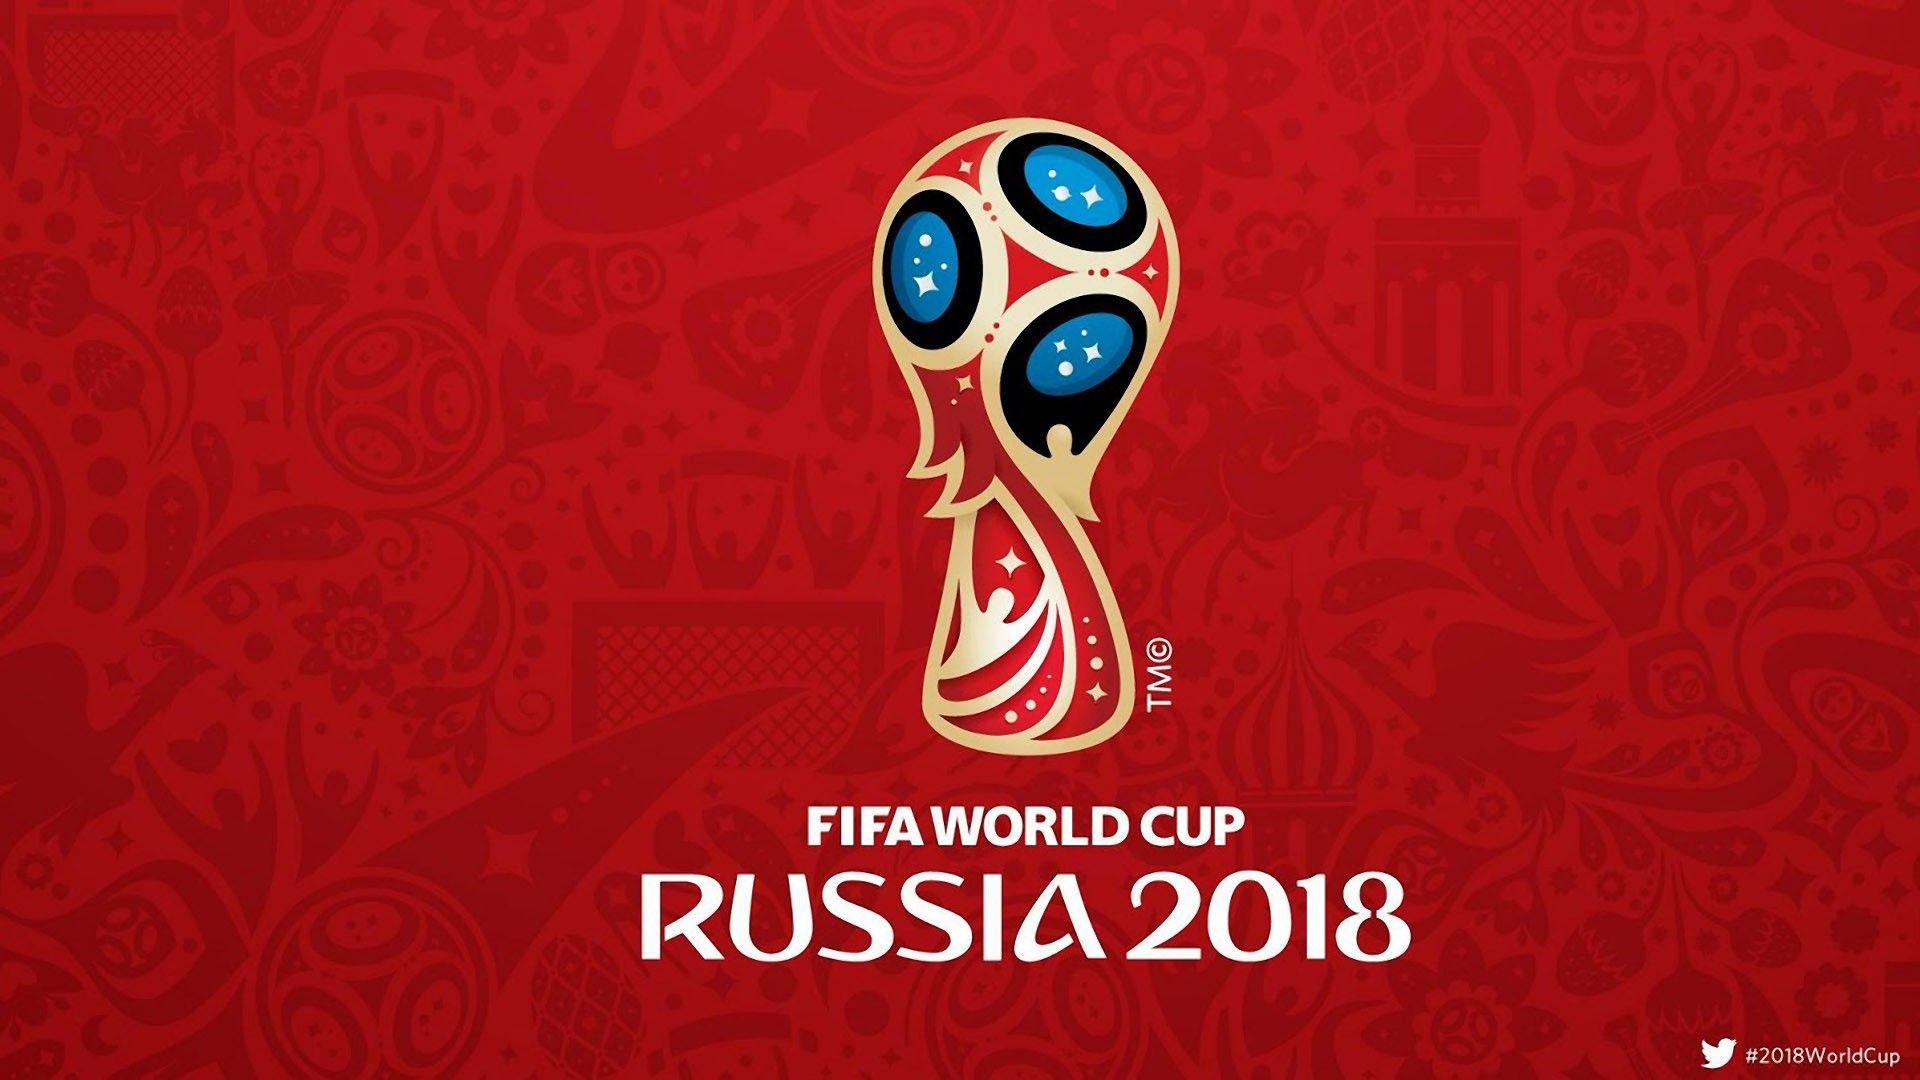 2018 fifa world cup wallpapers - wallpaper cave